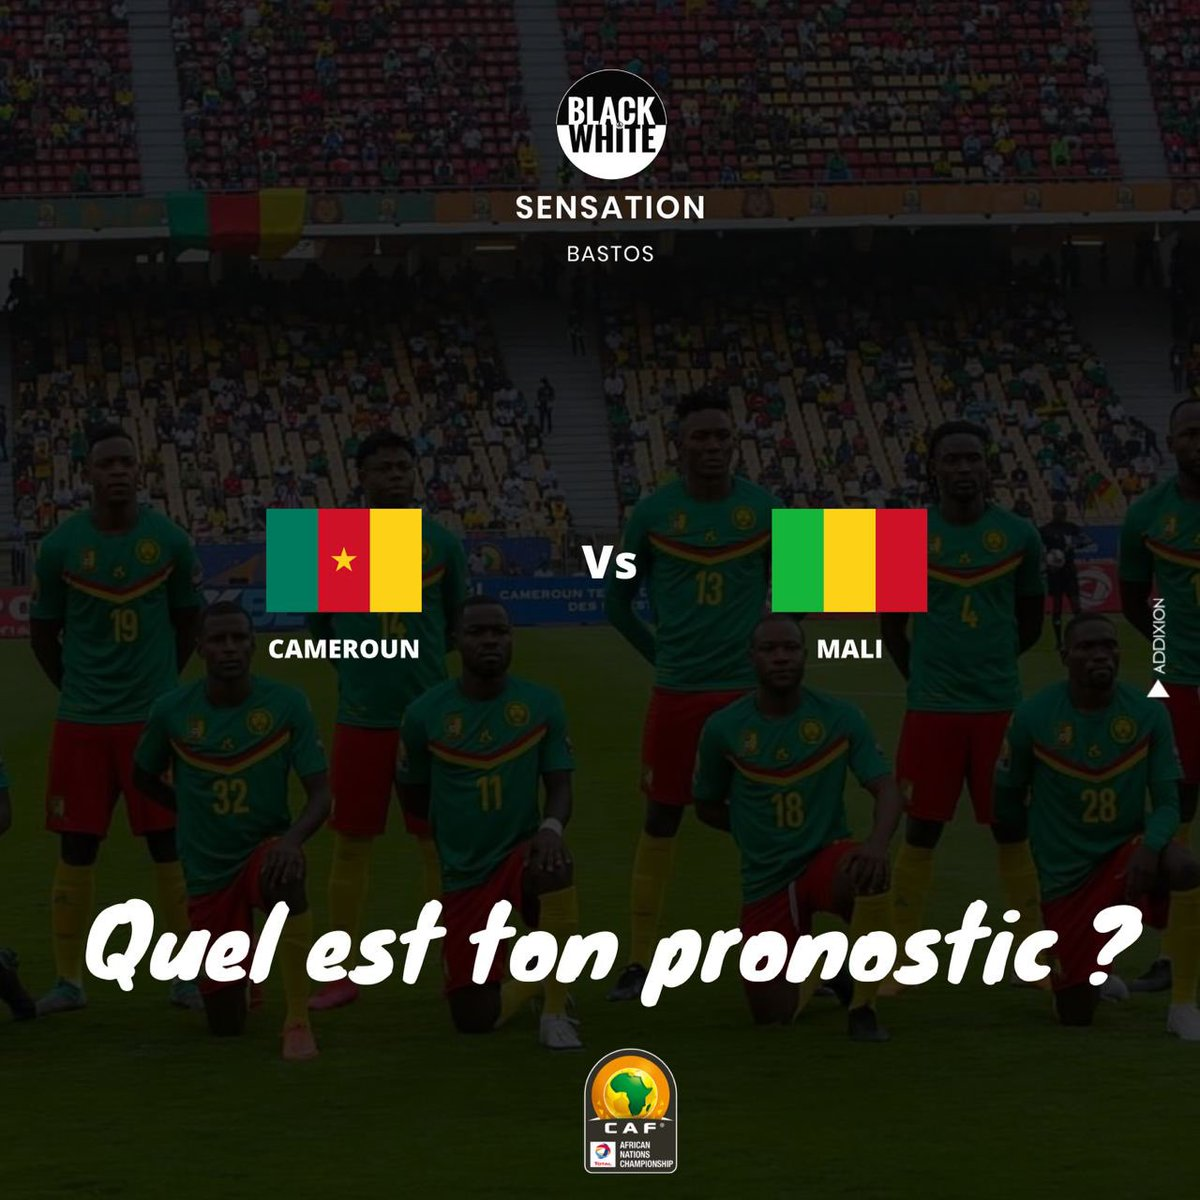 ||•CHAN2020•||  Quel est votre pronostic pour ce match de 17H ? 😅🌚  Les meilleurs moments de foot tous les soirs chez nous ⚽️  #BlackandWhite #addixion #football #chan2020 #goodvibes #supporters #show #Sensation #Enjoy #Drink #Bastos #yaounde